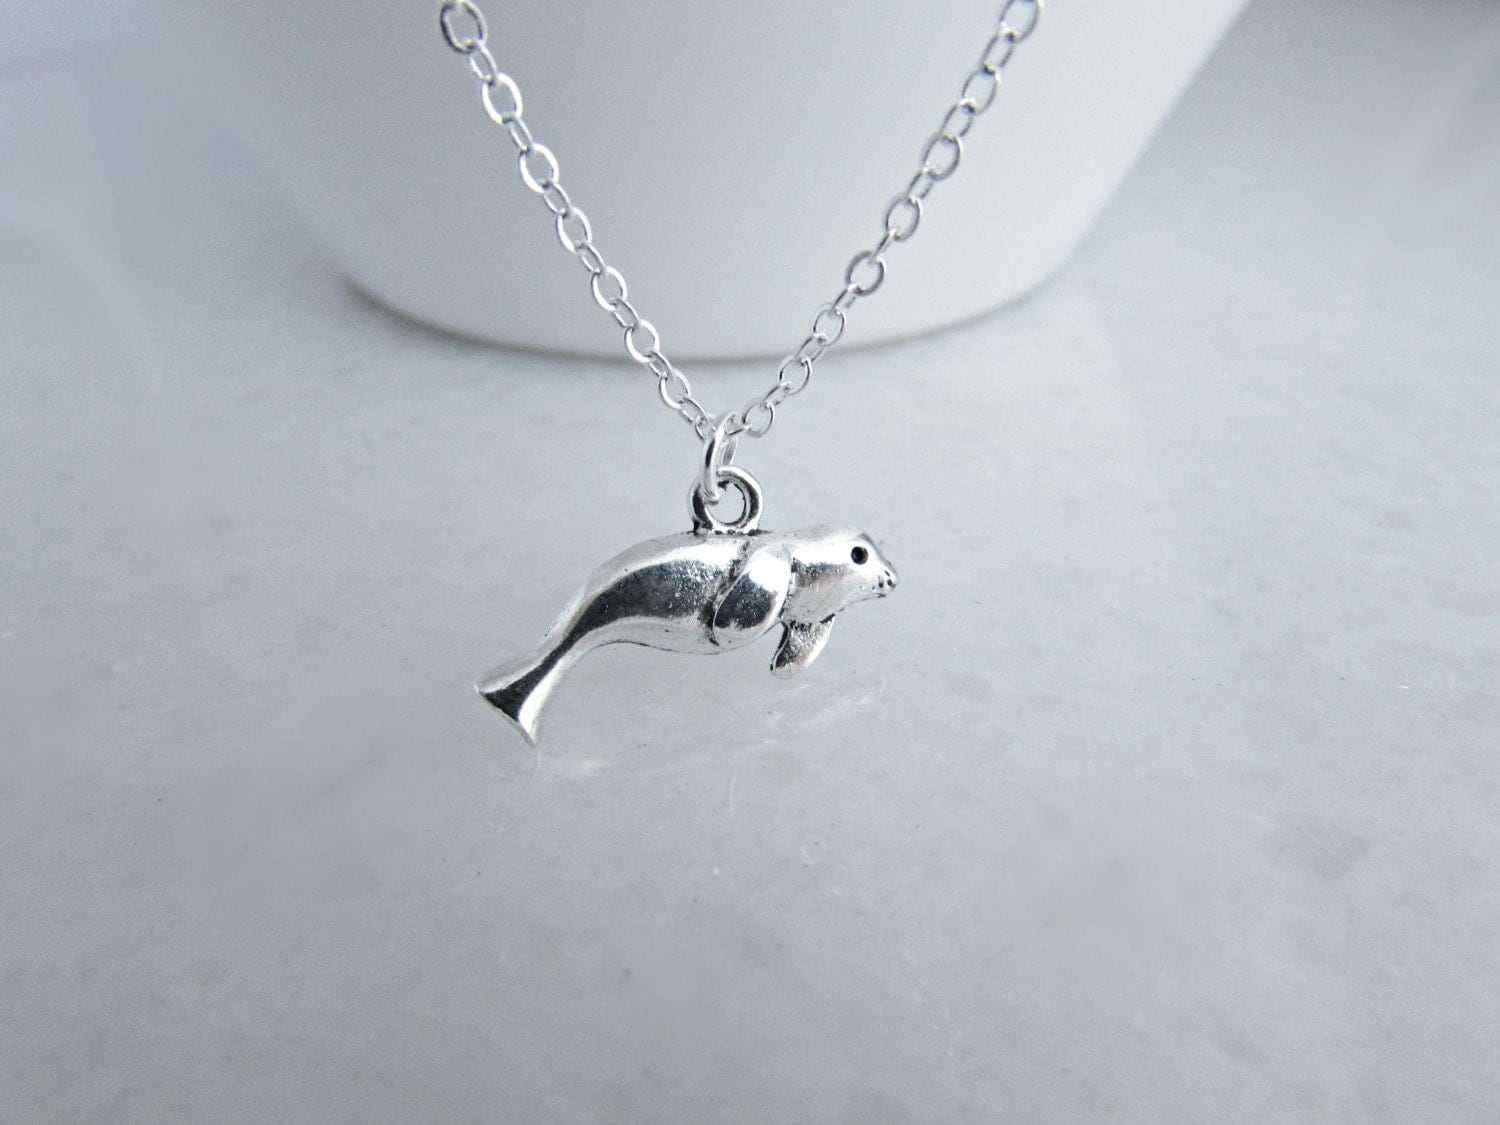 Seal necklace baby seal necklace sea lion necklace gifts for seal necklace baby seal necklace sea lion necklace gifts for girls british seller uk marine gifts sea life necklace aquatic mammal mozeypictures Image collections